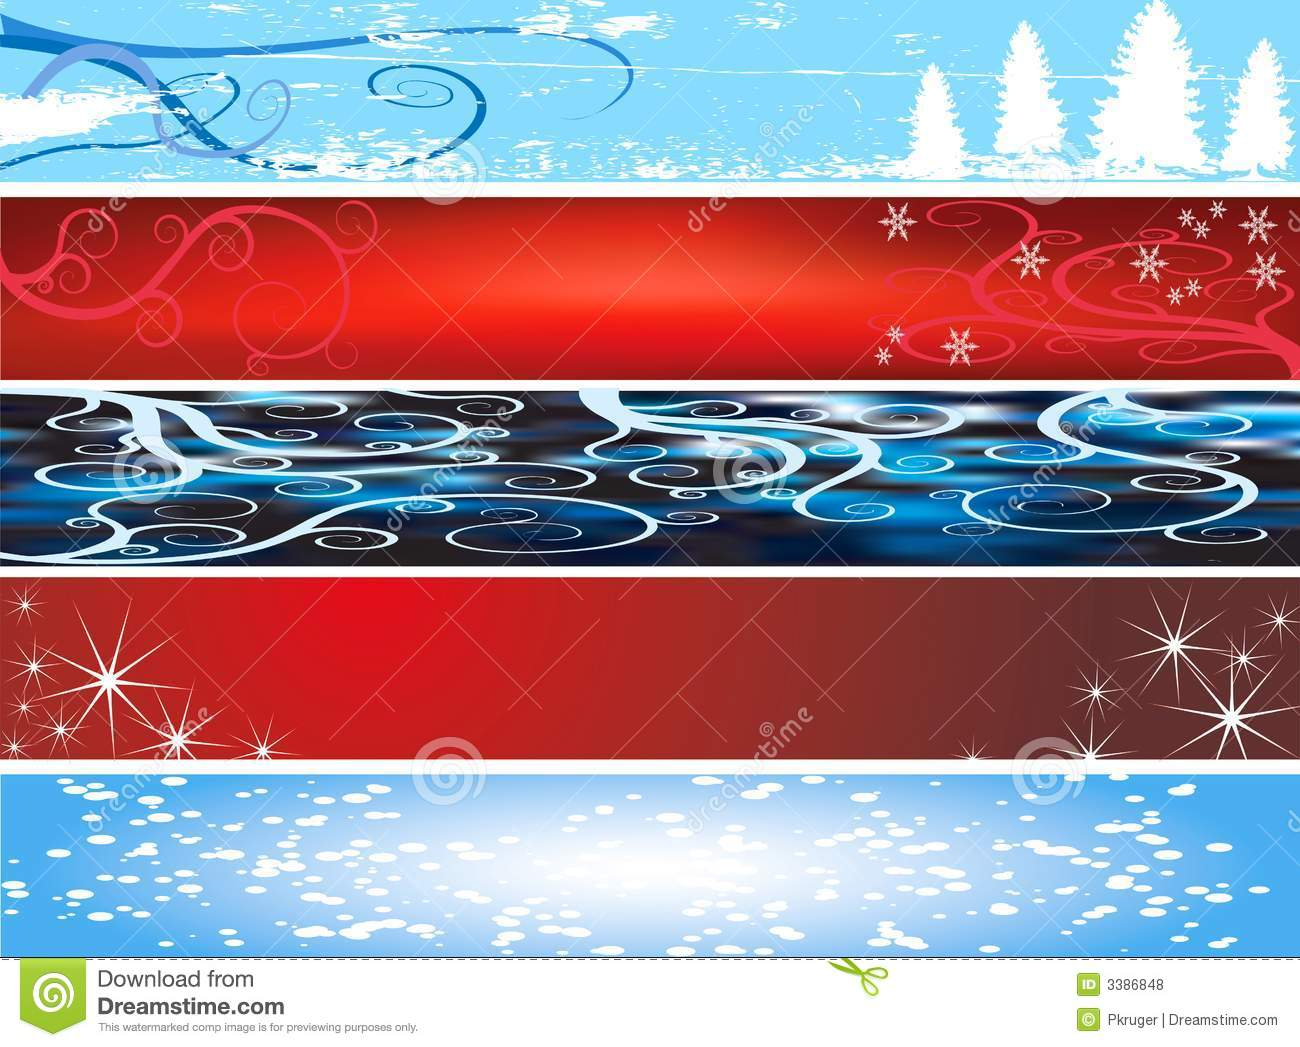 Xmas Website Banners Royalty Free Stock Photos Image